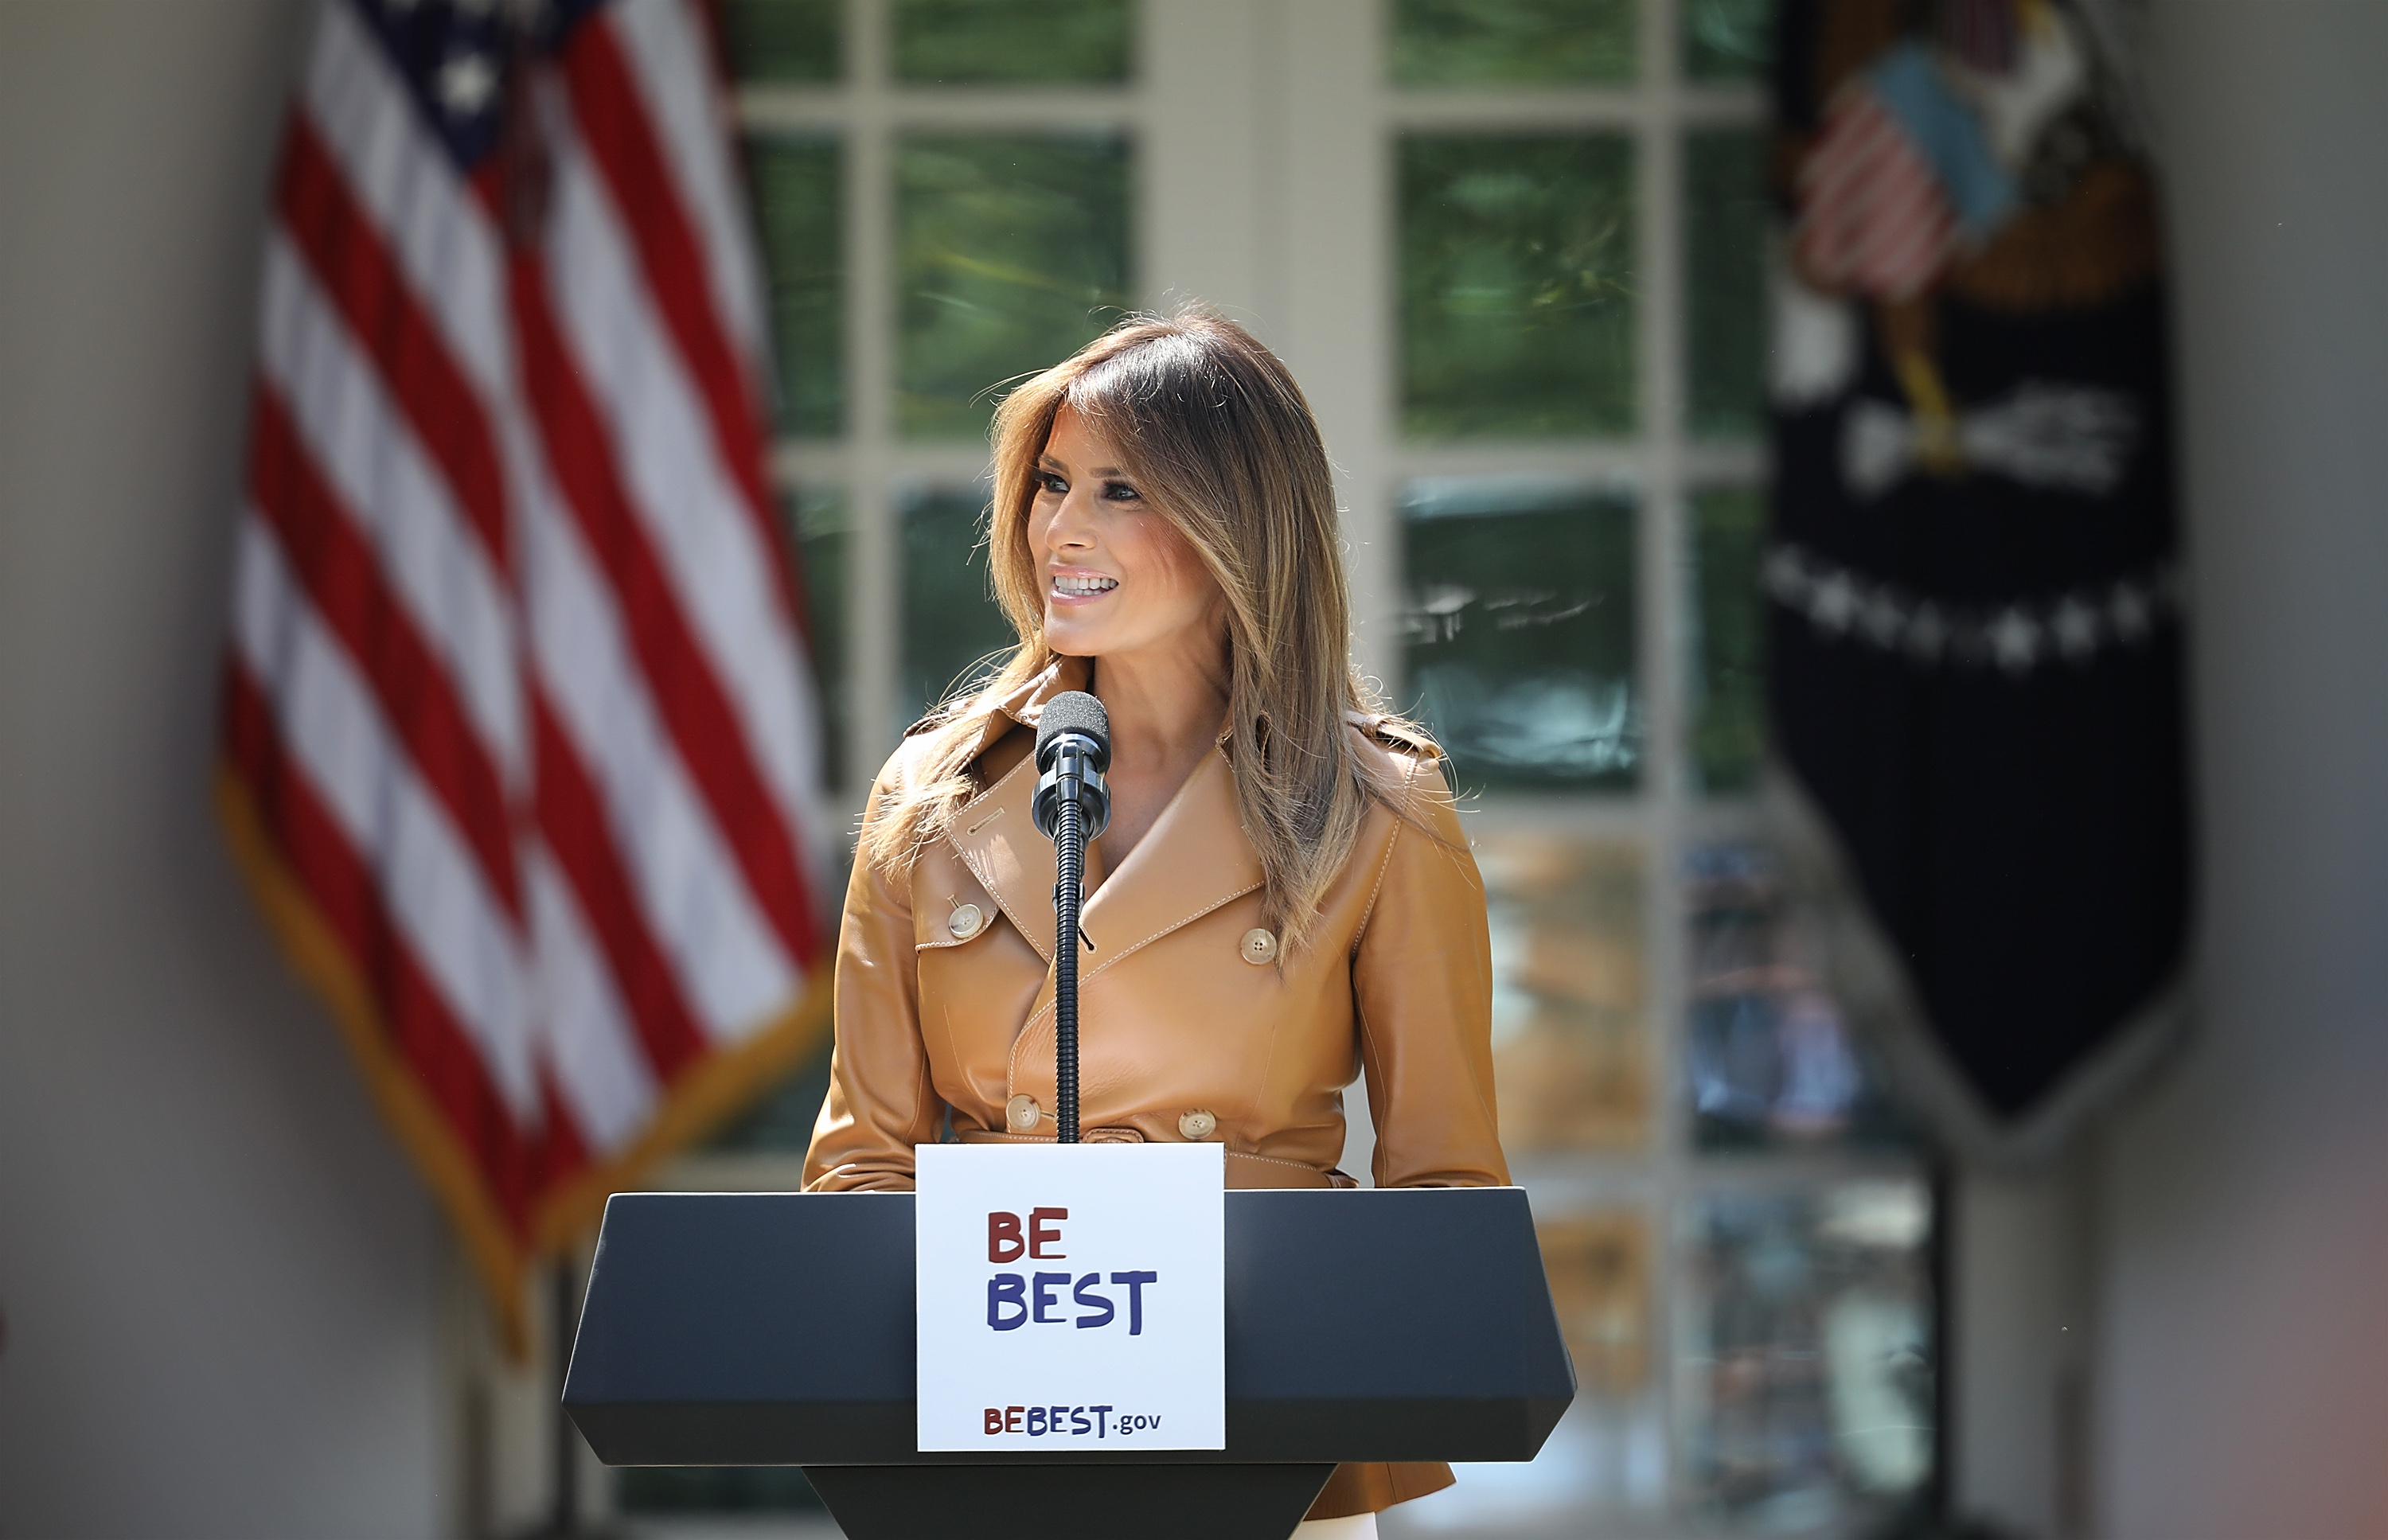 U.S. first lady Melania Trump speaks in the Rose Garden of the White House May 7, 2018 in Washington, DC. Trump outlined her new initiatives, known as the Be Best program, during the event.